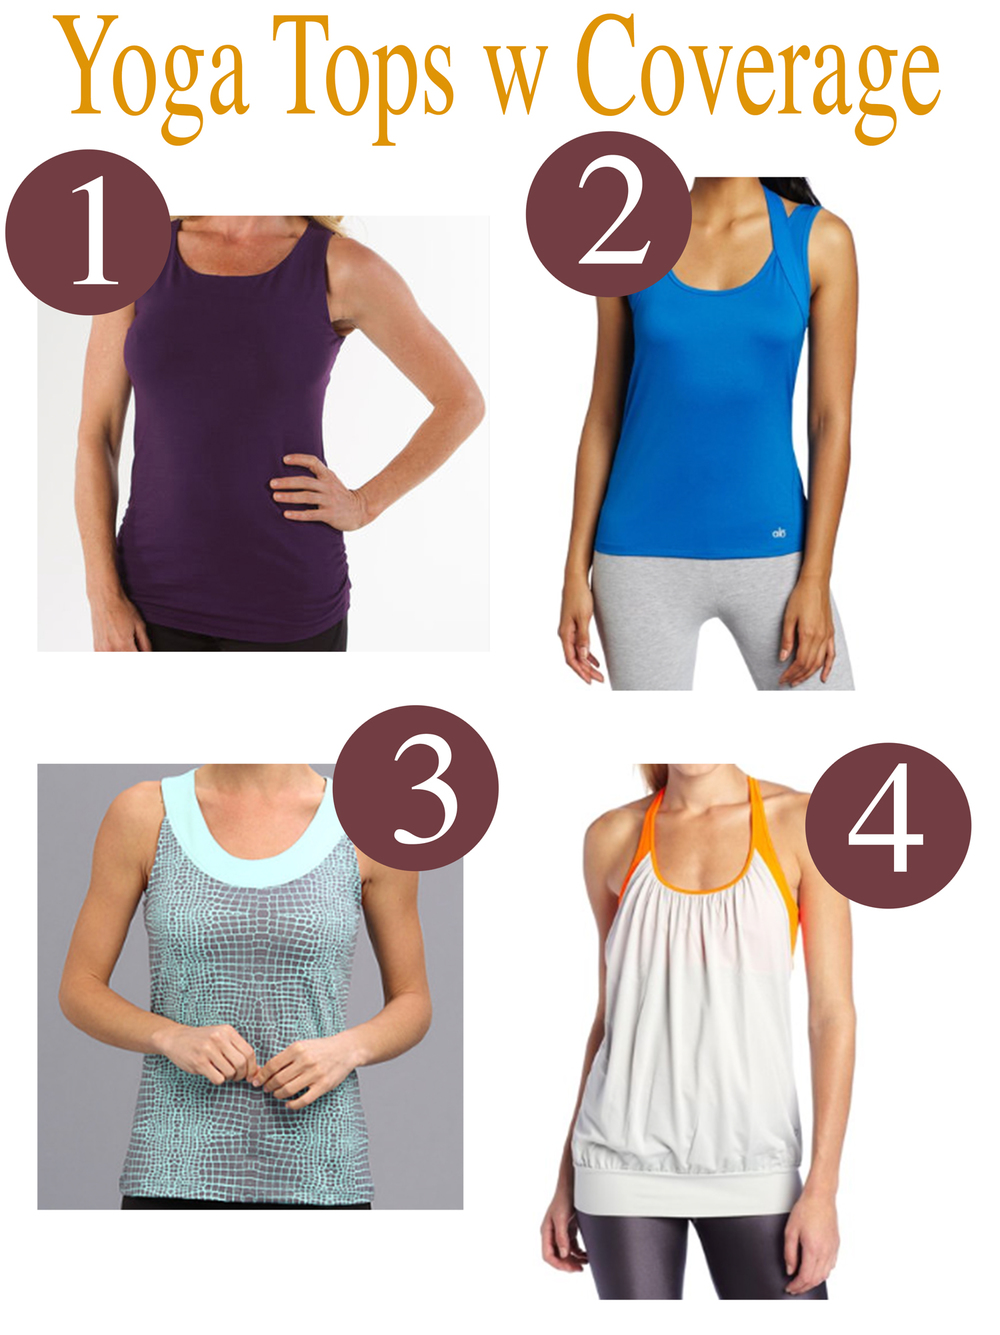 Pin it! Four yoga tops with more coverage   1.   Gaiam top   2.   Alo top   3.   Tail activewear top   4.   Alo top